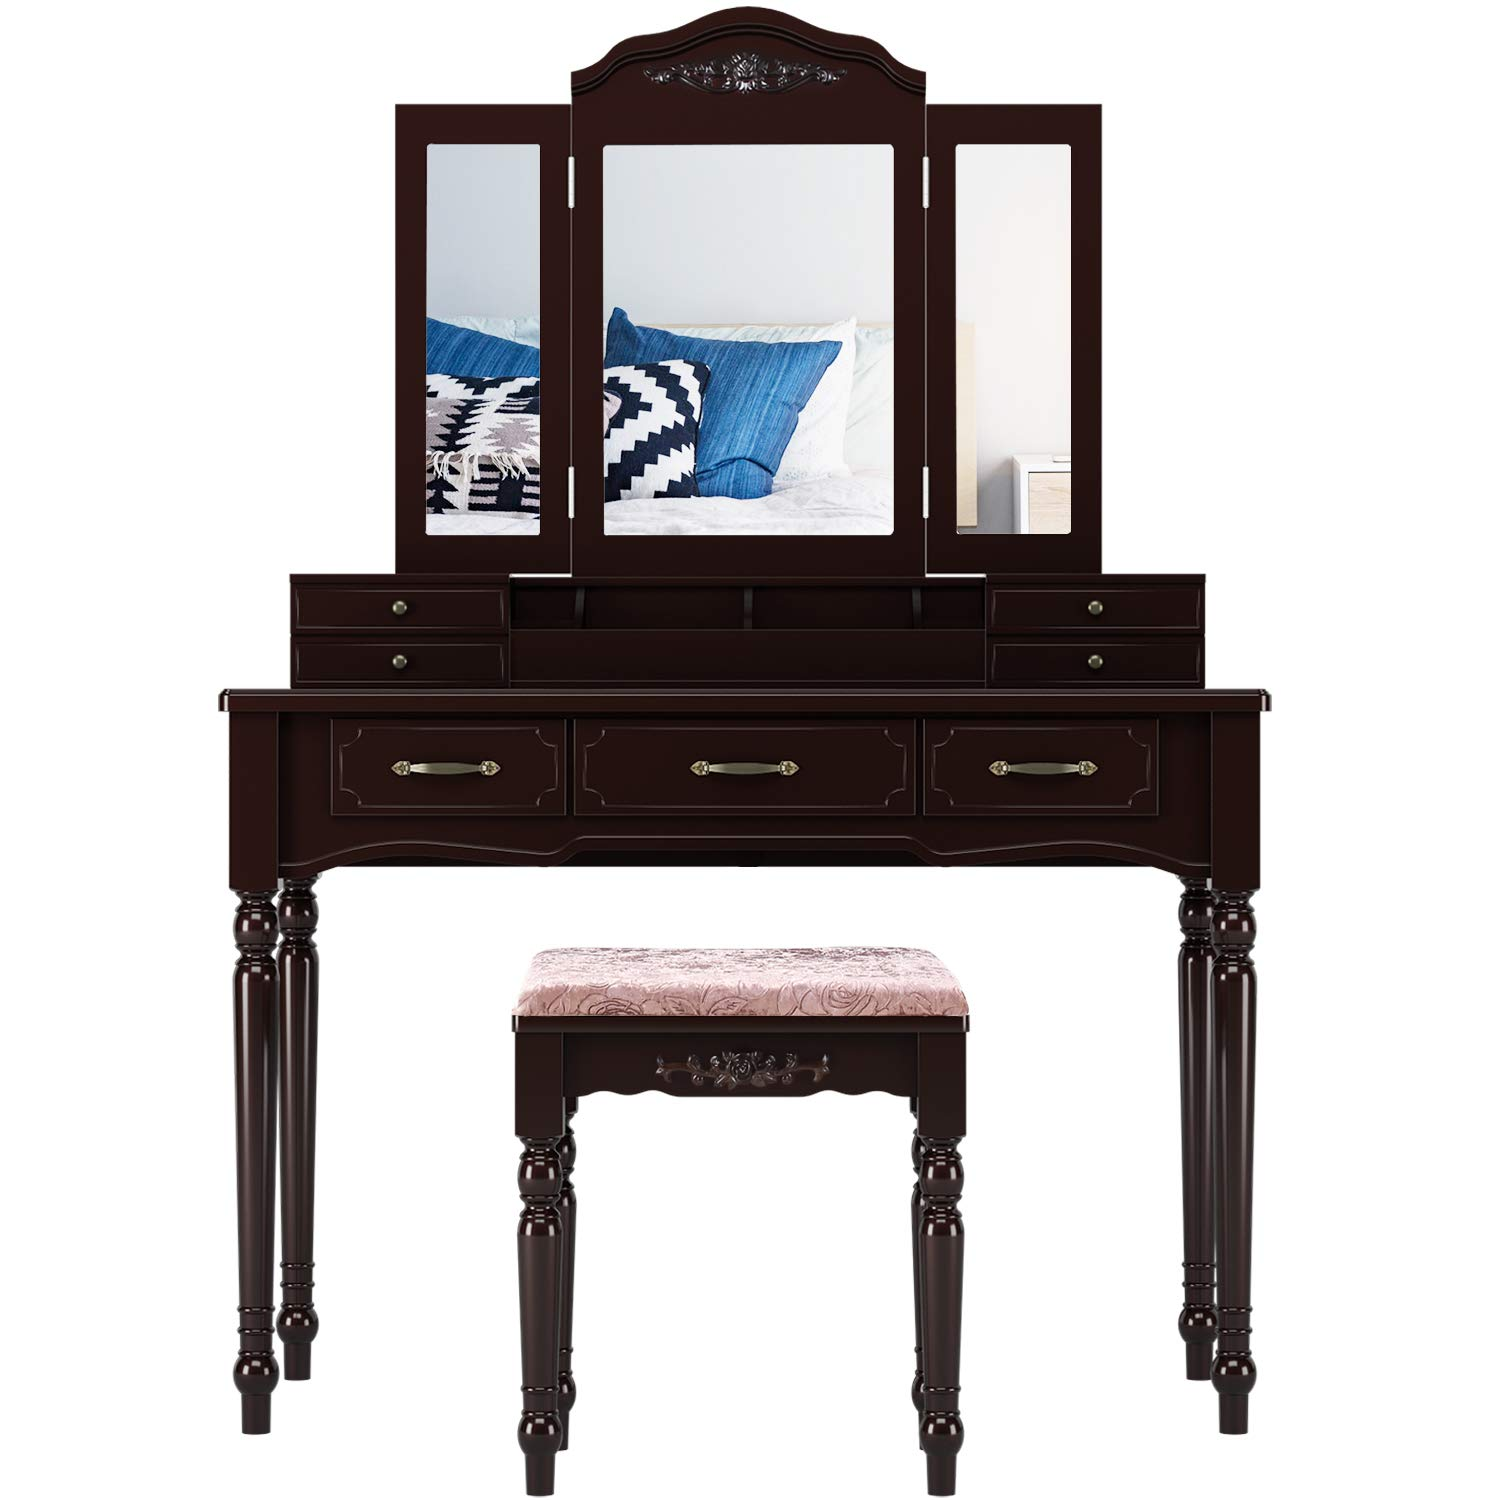 HOMECHO Vanity Table Set with 7 Drawers and 4 Makeup Brush Holder, Removable Tri-Folding Mirror and 8 Necklace Hooks with Cushioned Stool Dark Espresso, HMC-MD-010